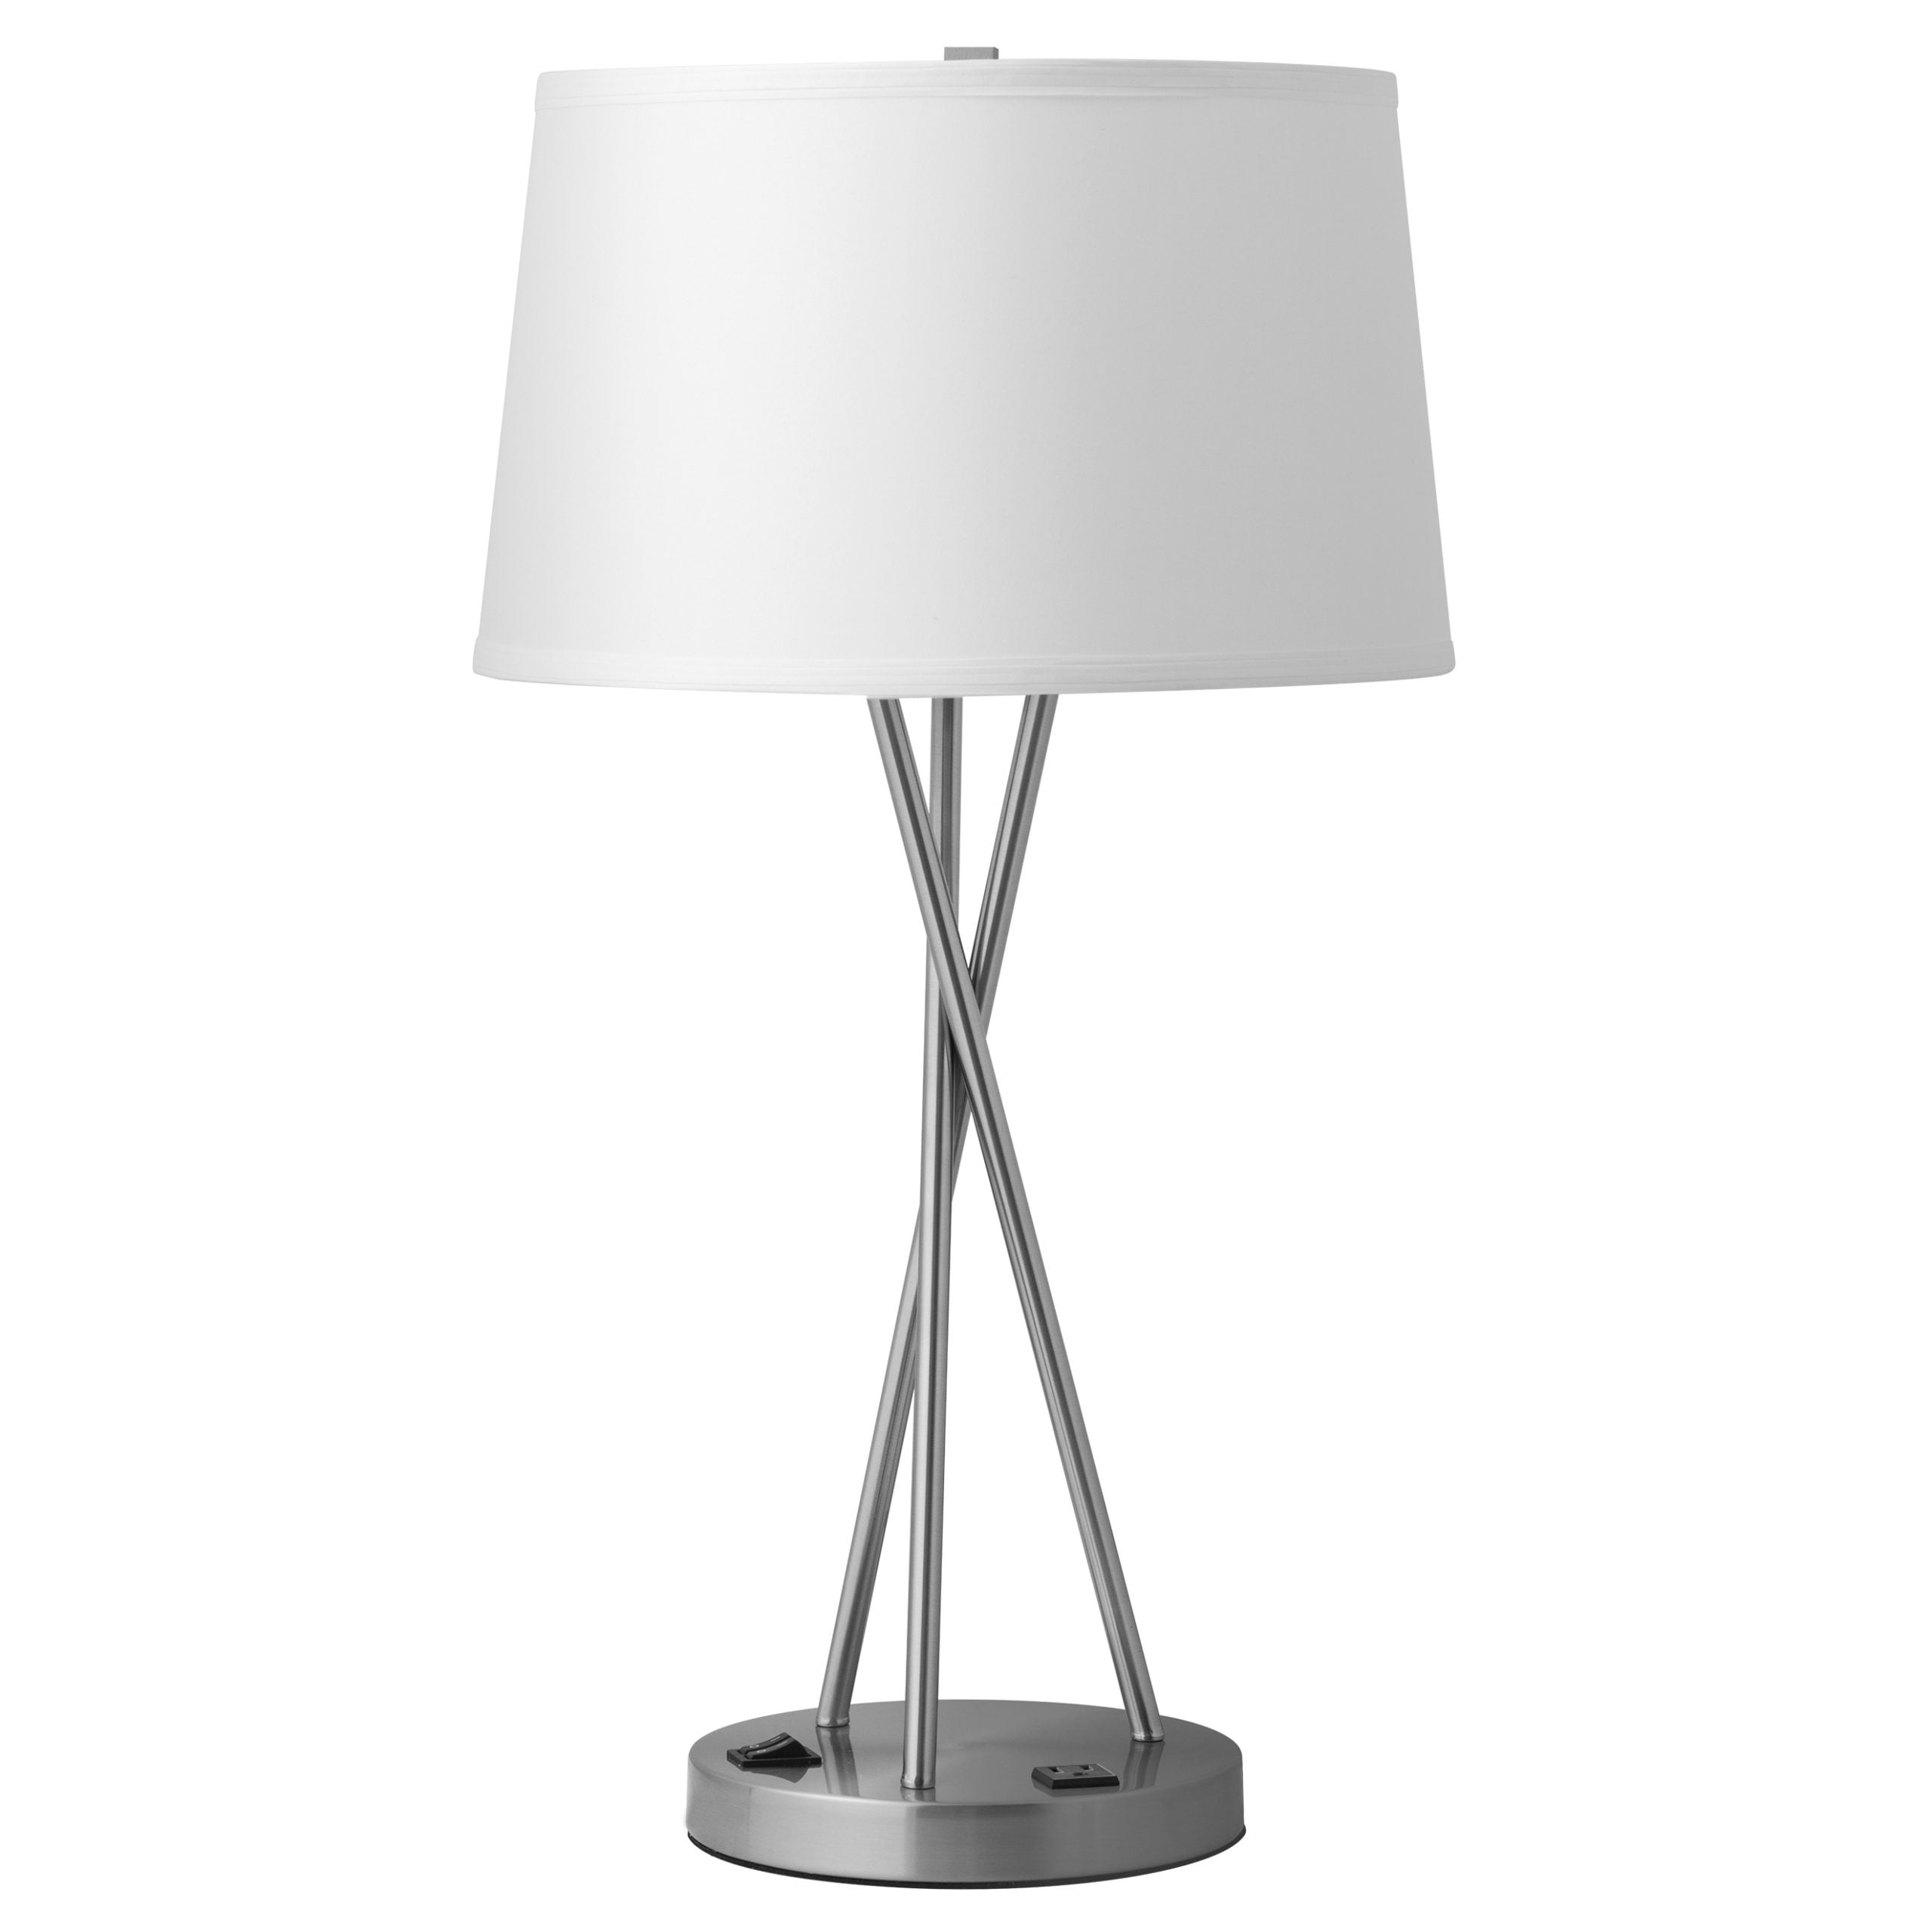 Breeze Single Table Lamp with 1 Outlet